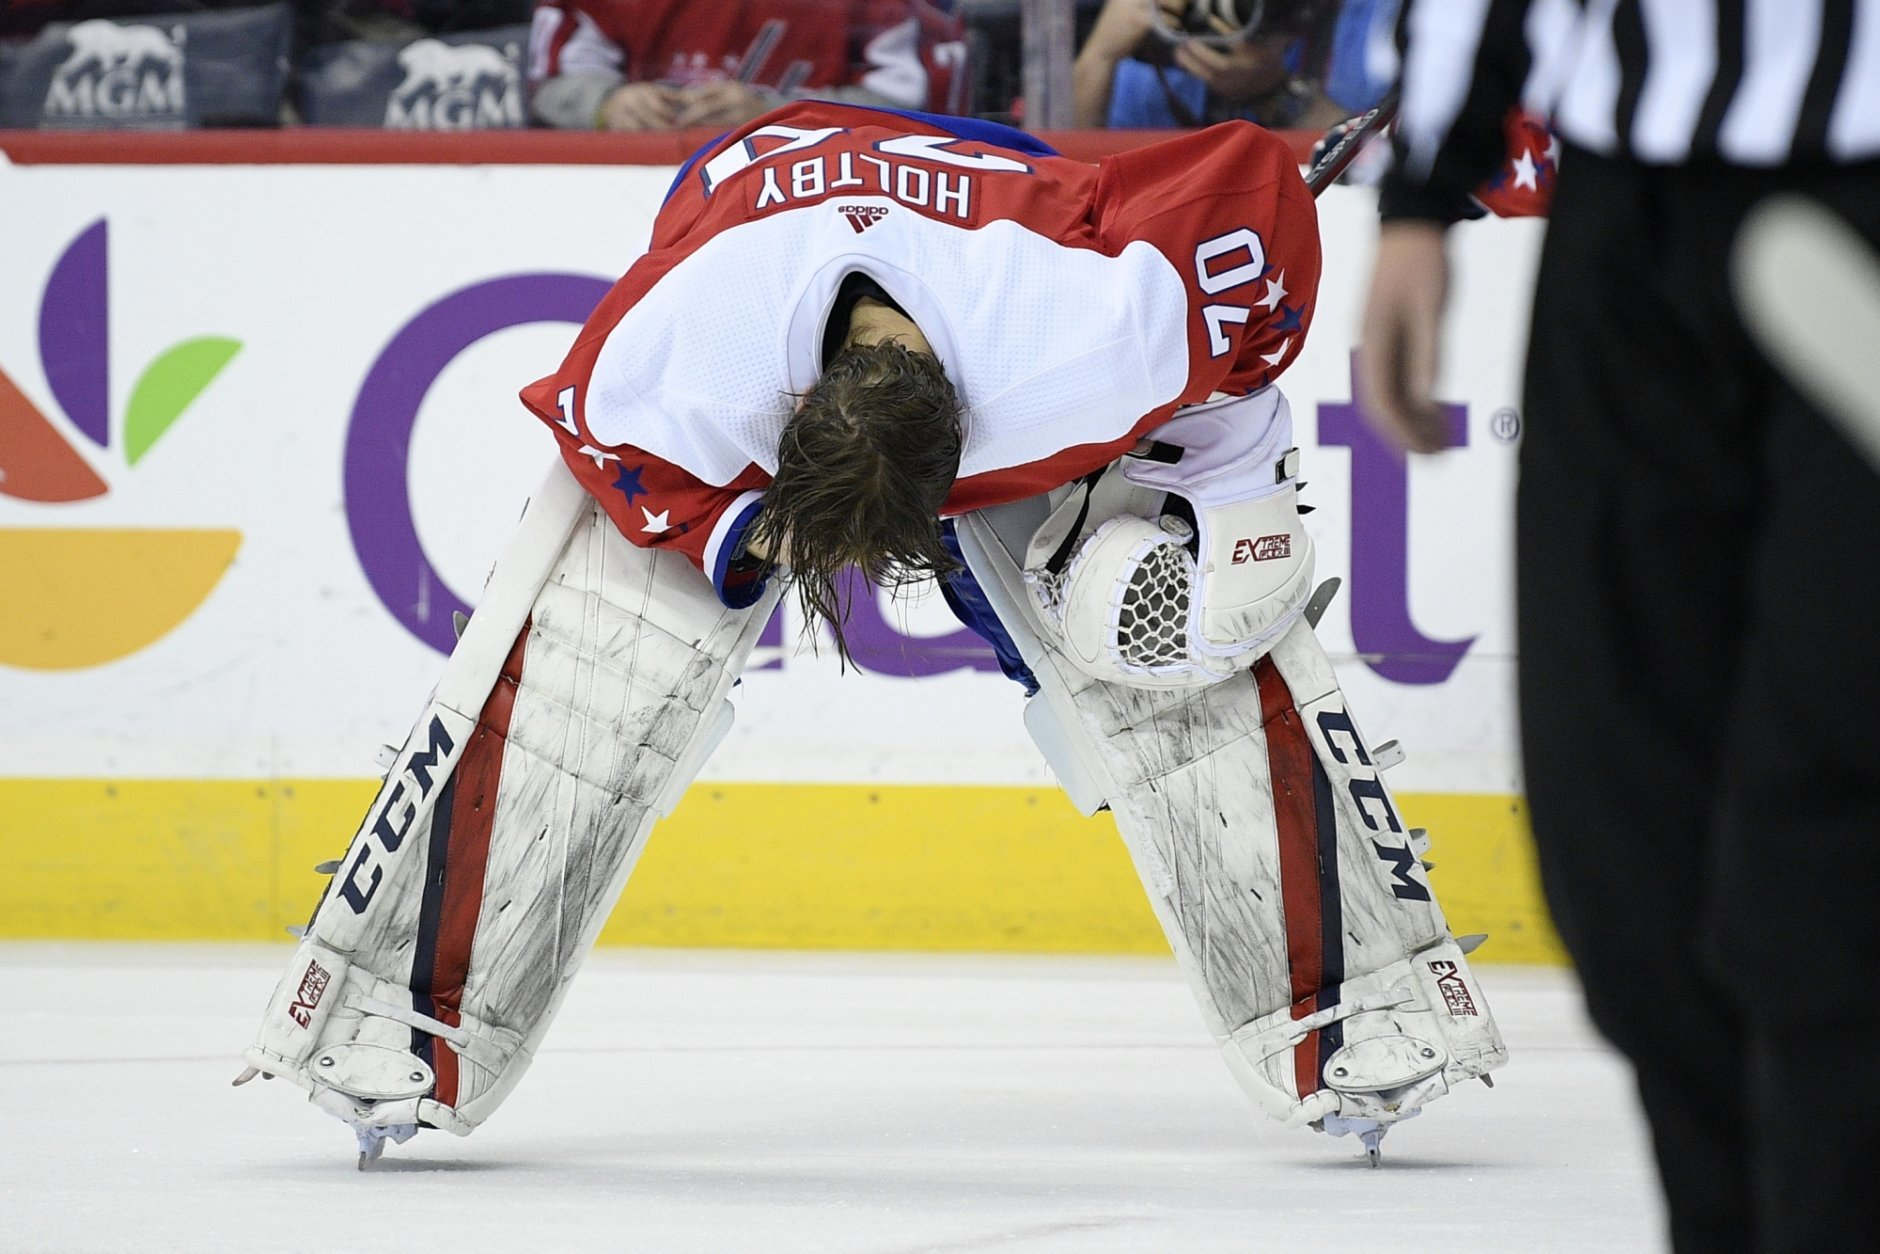 Washington Capitals goaltender Braden Holtby (70) pauses on the ice after he was injured during the second period of an NHL hockey game against the Columbus Blue Jackets, Saturday, Jan. 12, 2019, in Washington. (AP Photo/Nick Wass)